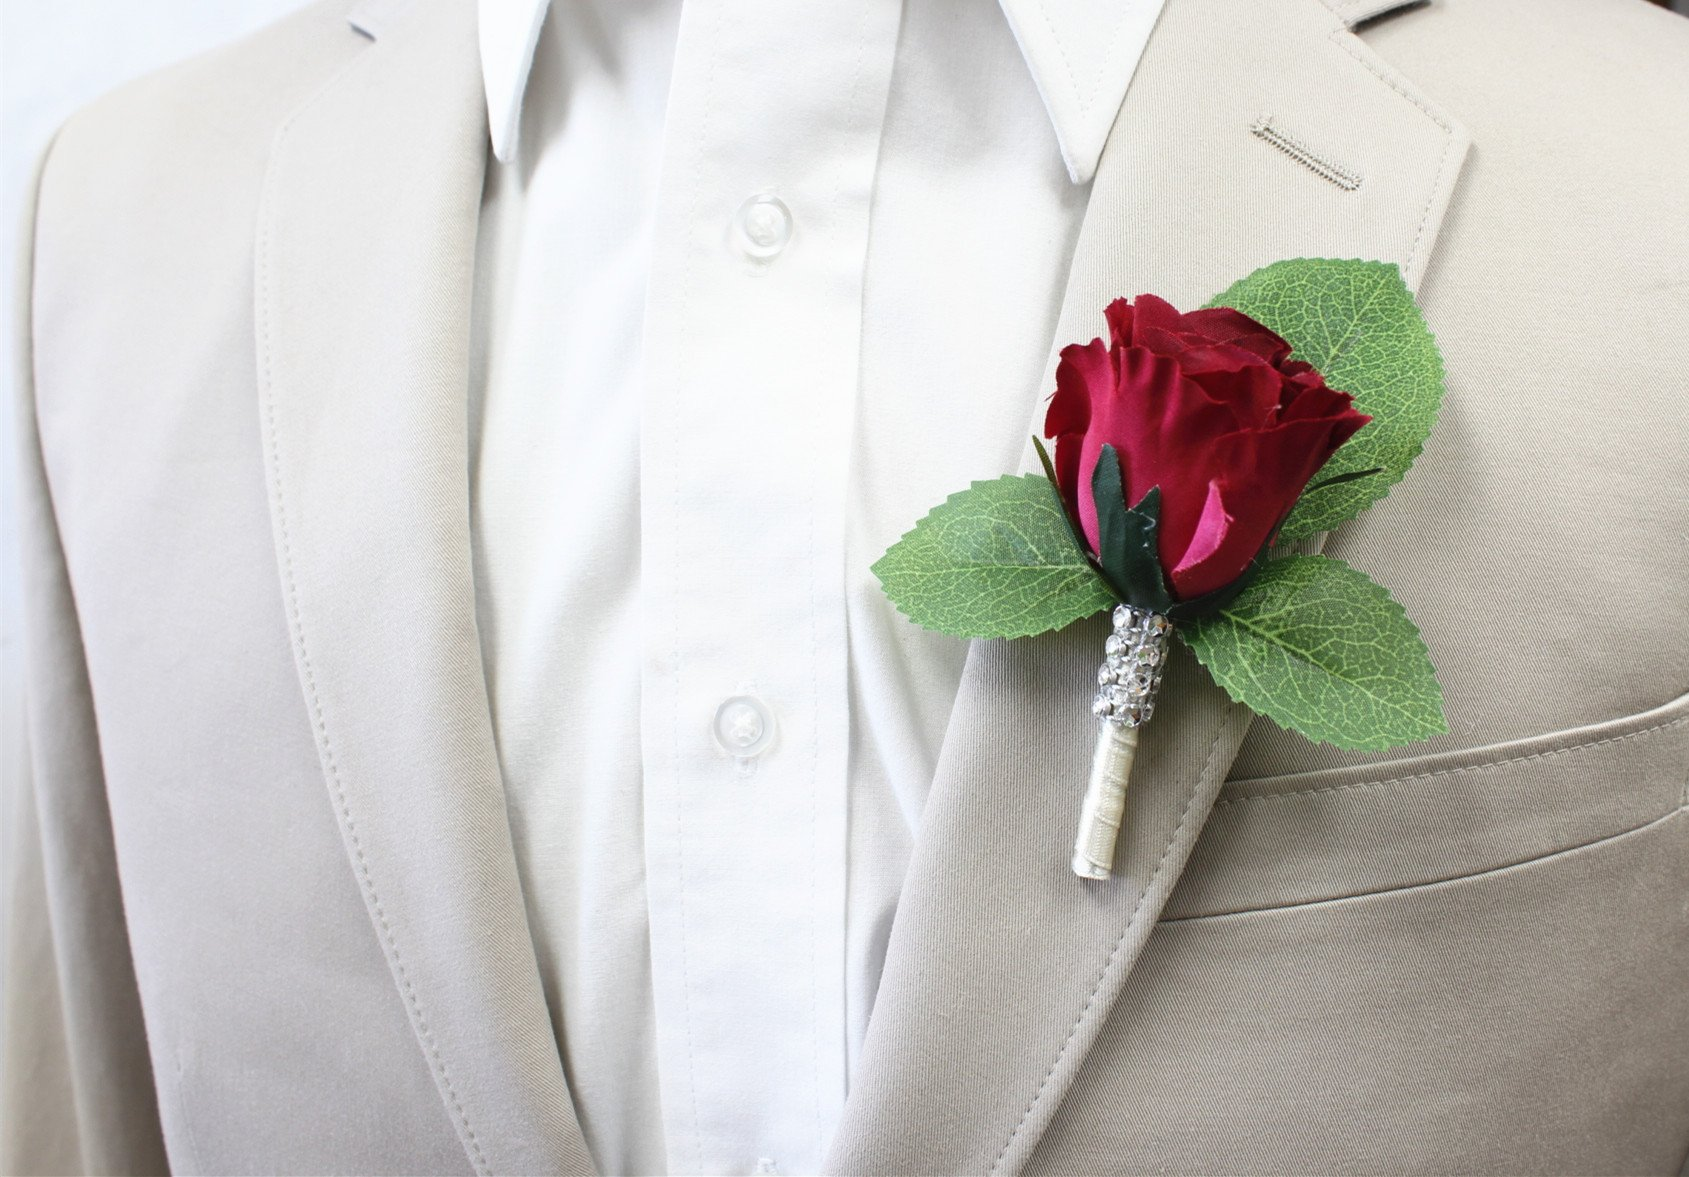 Angel-Isabella-Boutonniere-Nice-Hand-Crafted-Rosebud-Keepsake-Artificial-Flower-Pearl-Headed-Pin-Included